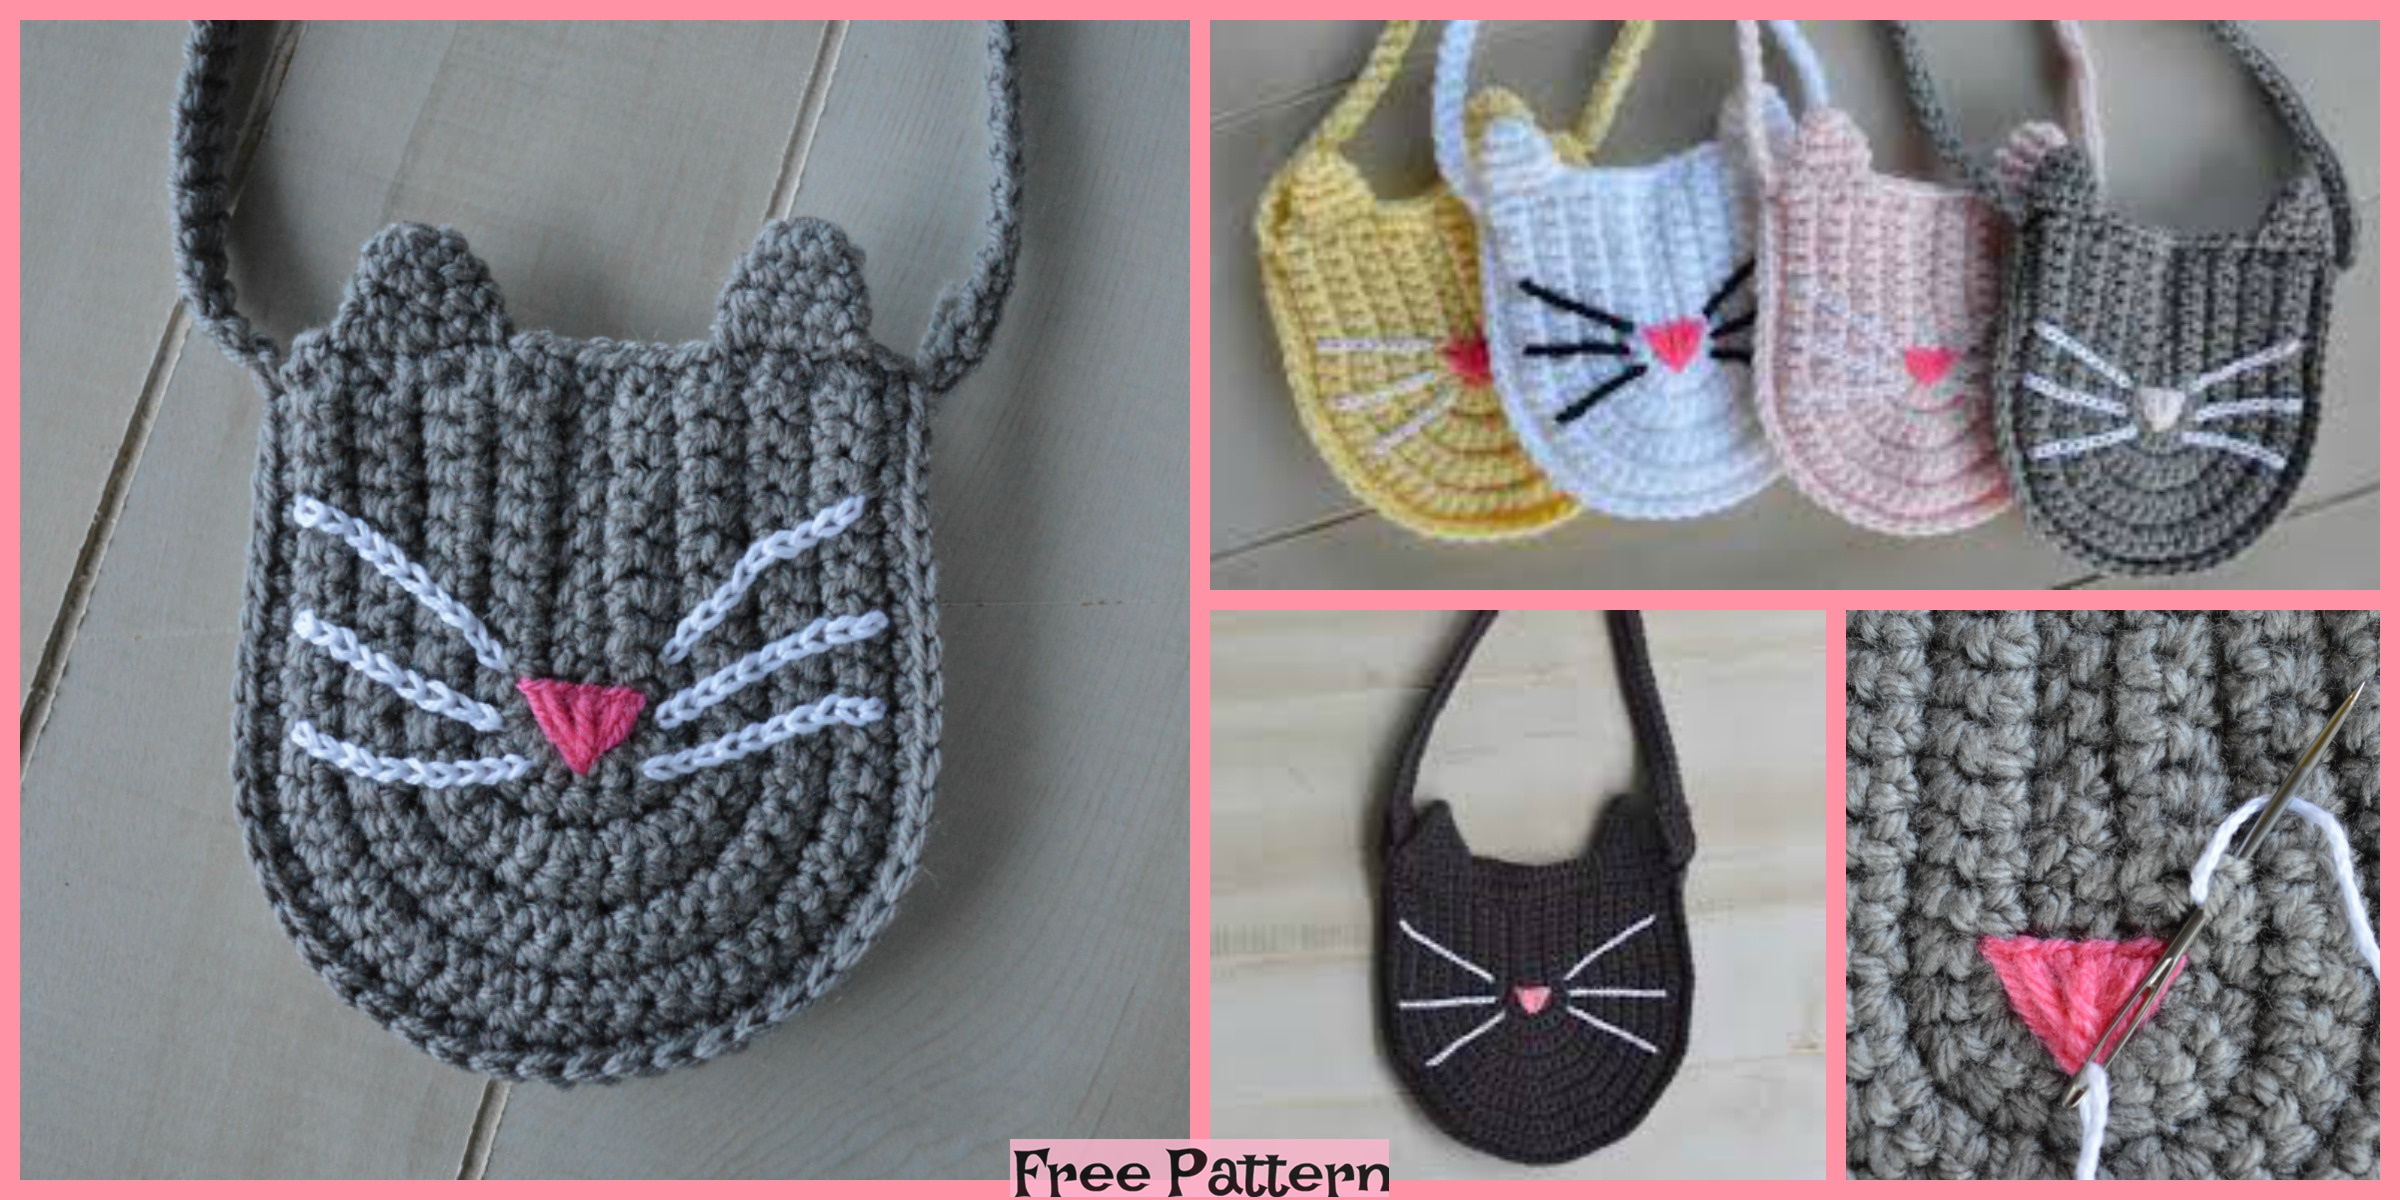 Cute Crochet Kitty Bag – Free Pattern